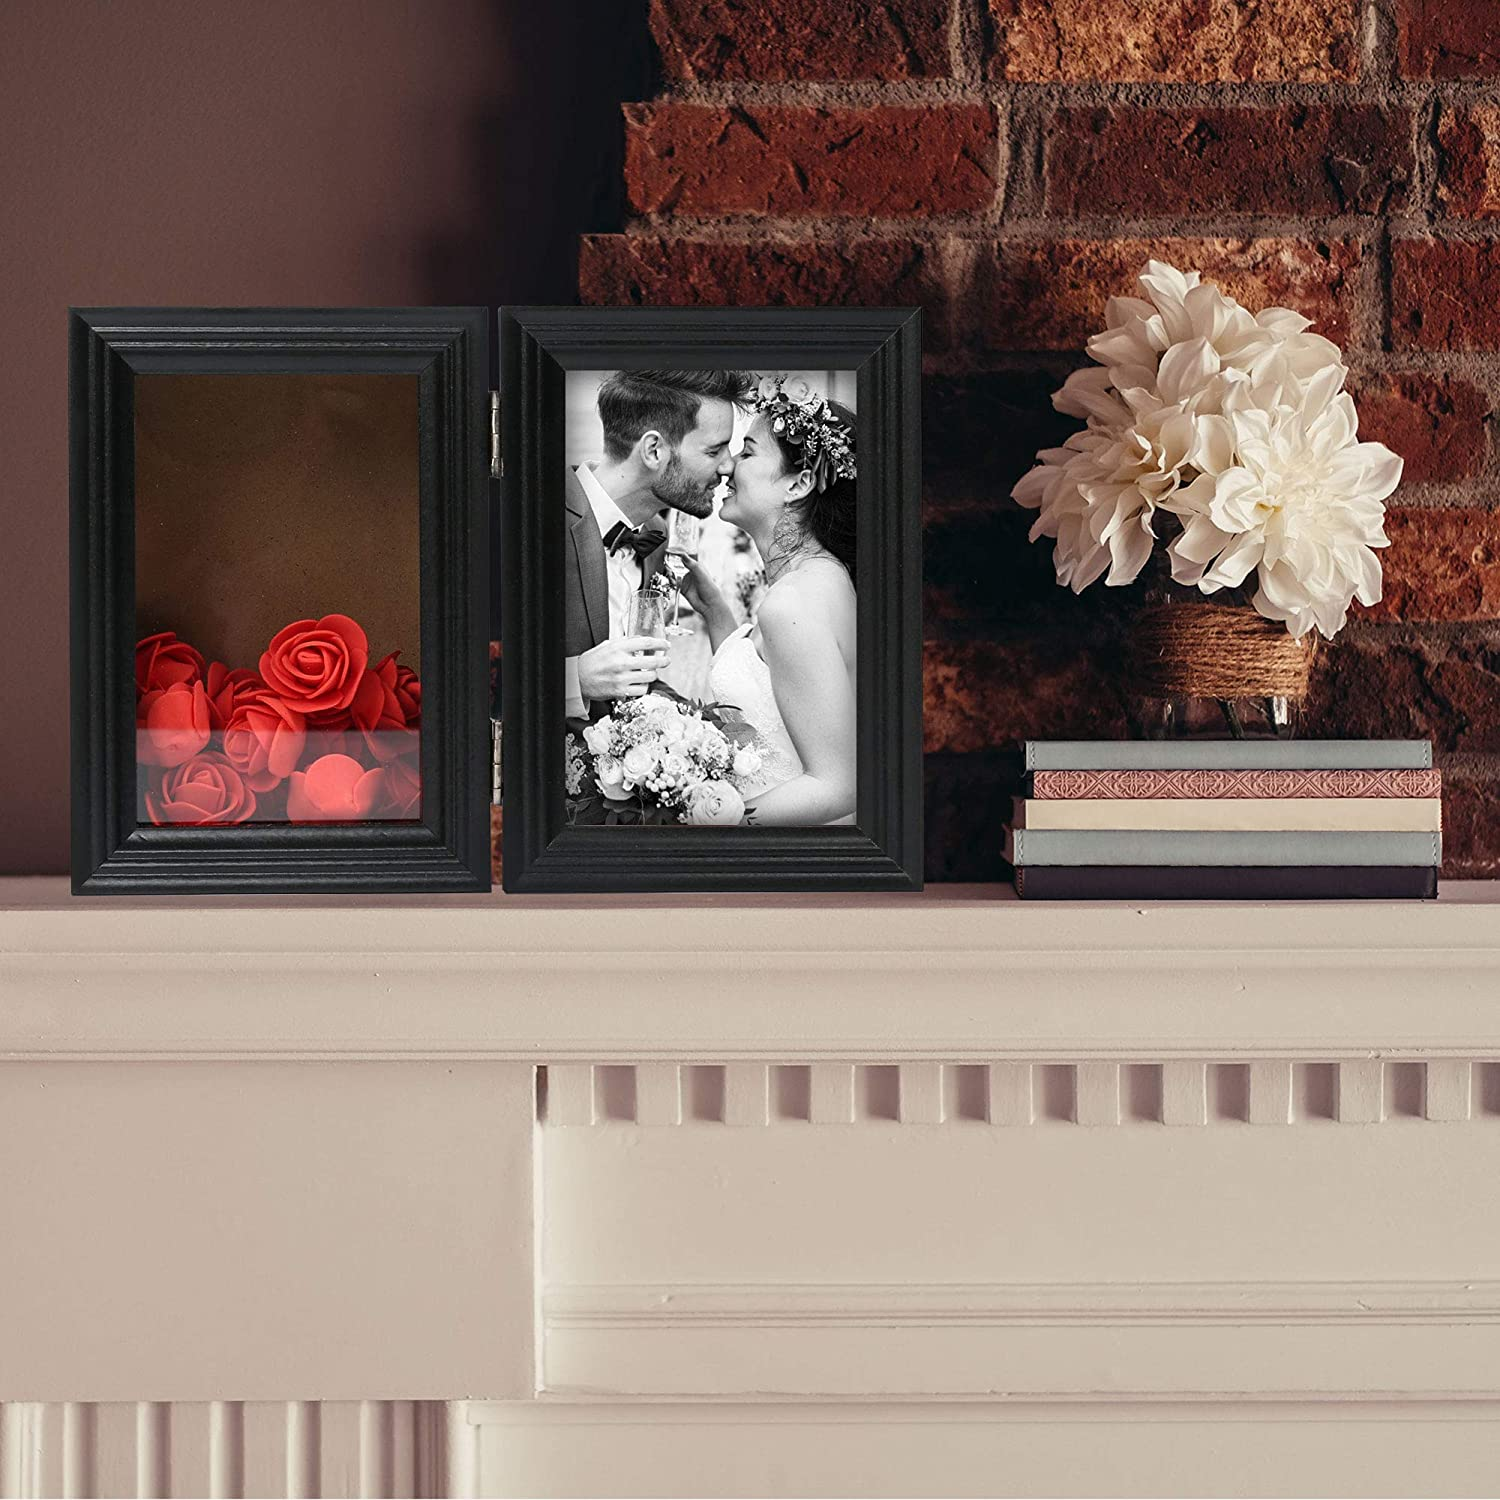 Double Hinged Picture Frame Bouquet Collection Glass Front Wedding Graduation 12 Artificial Flowers Included LotFancy Deep Shadow Box for 4x6/'/' Photos Black Wood Memory Shadow Box for Medals